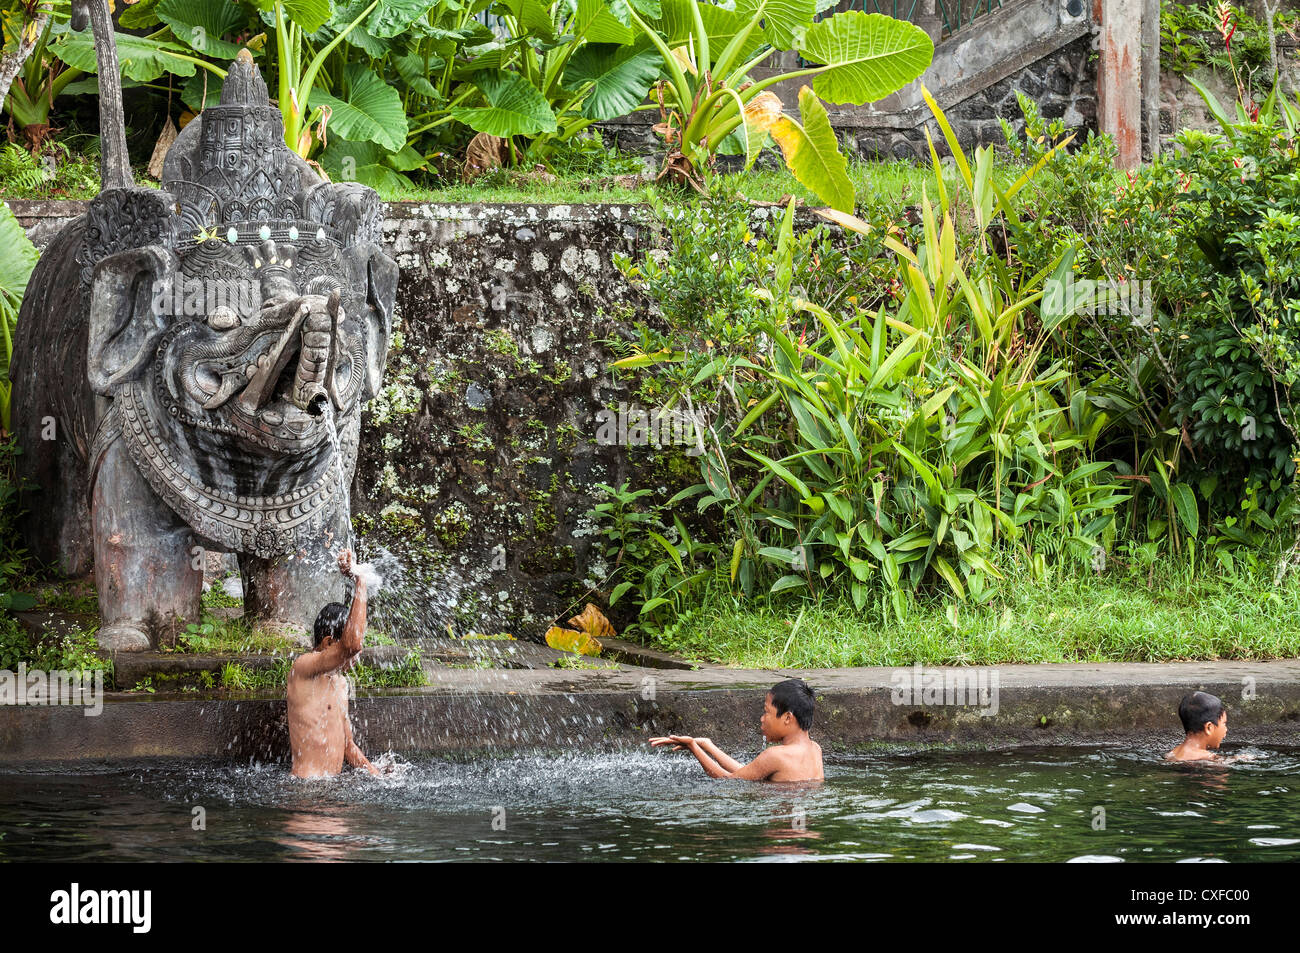 Children Swim By A Statue Of Hindu God Ganesh In A Pool At The Taman  Tirtagangga Water Palace And Garden, East, Bali, Indonesia.